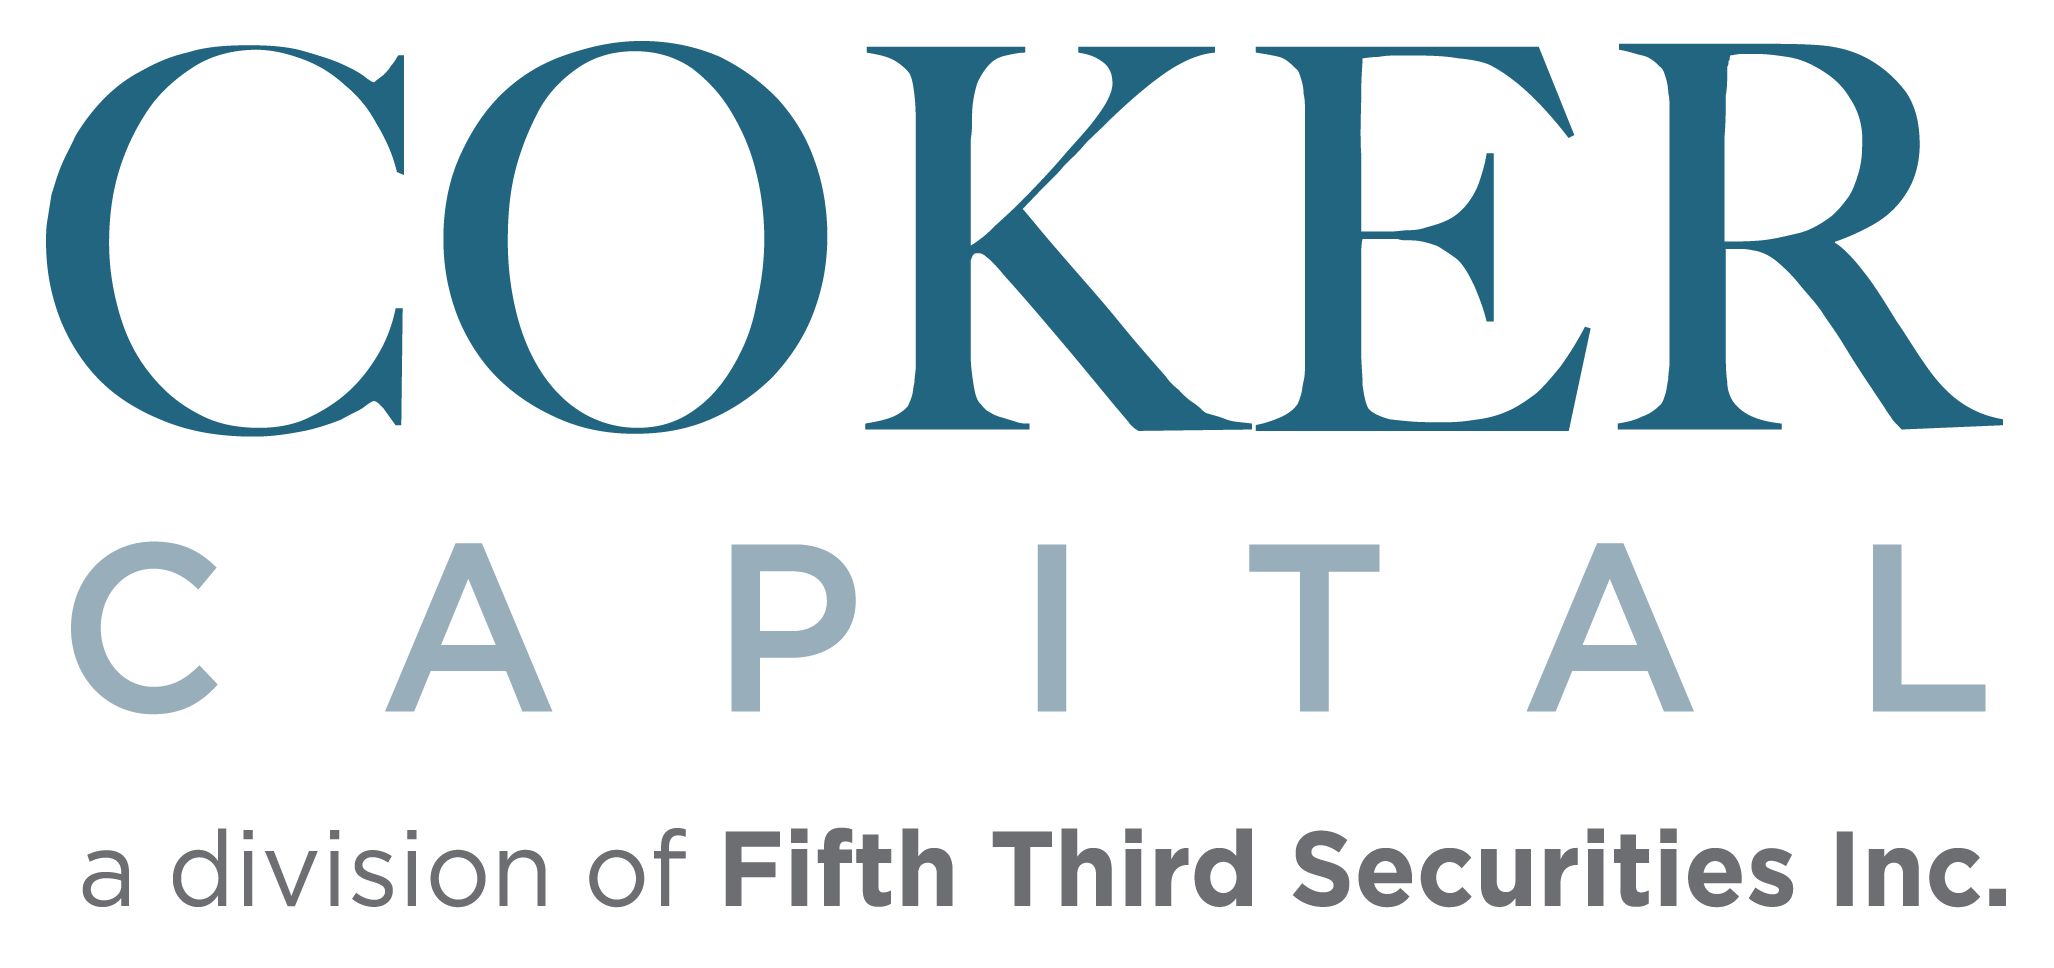 Coker Capital logo and link to the homepage